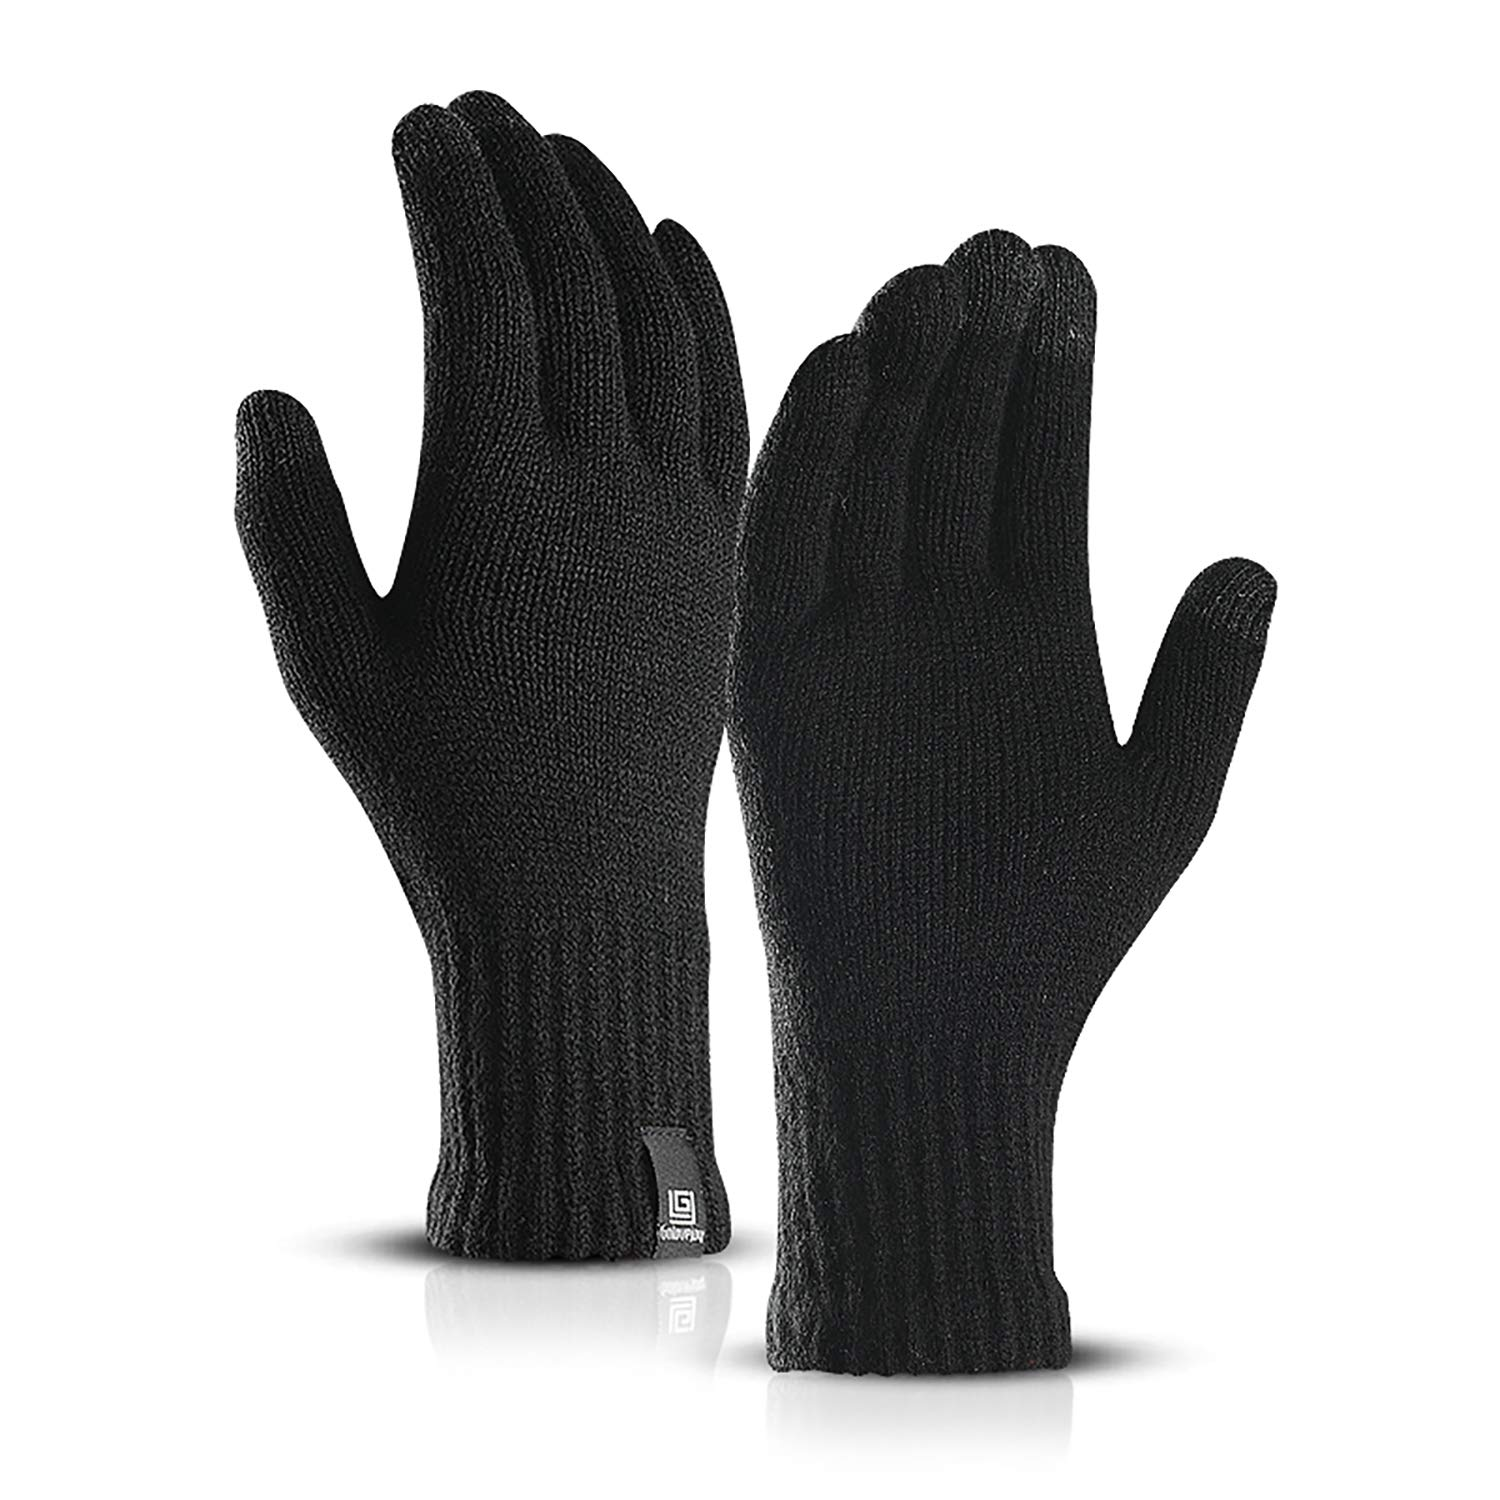 Anqier Knit Gloves, Winter Thick Warm Liner Gloves Windproof With Three Fingers Touch Screen For Men & Women Free Size. (Black)